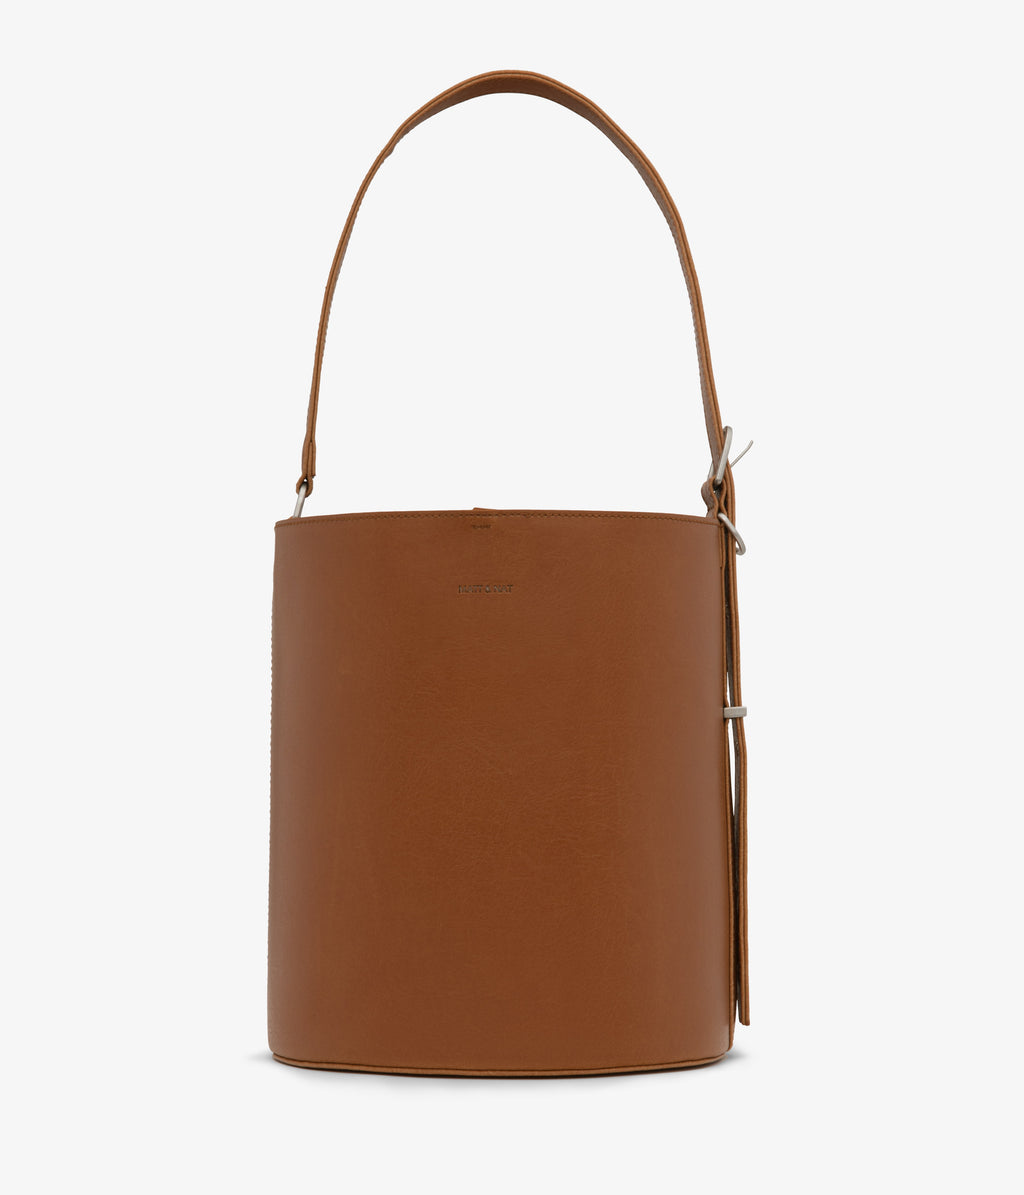 MATT & NAT AZUR BUCKET BAG